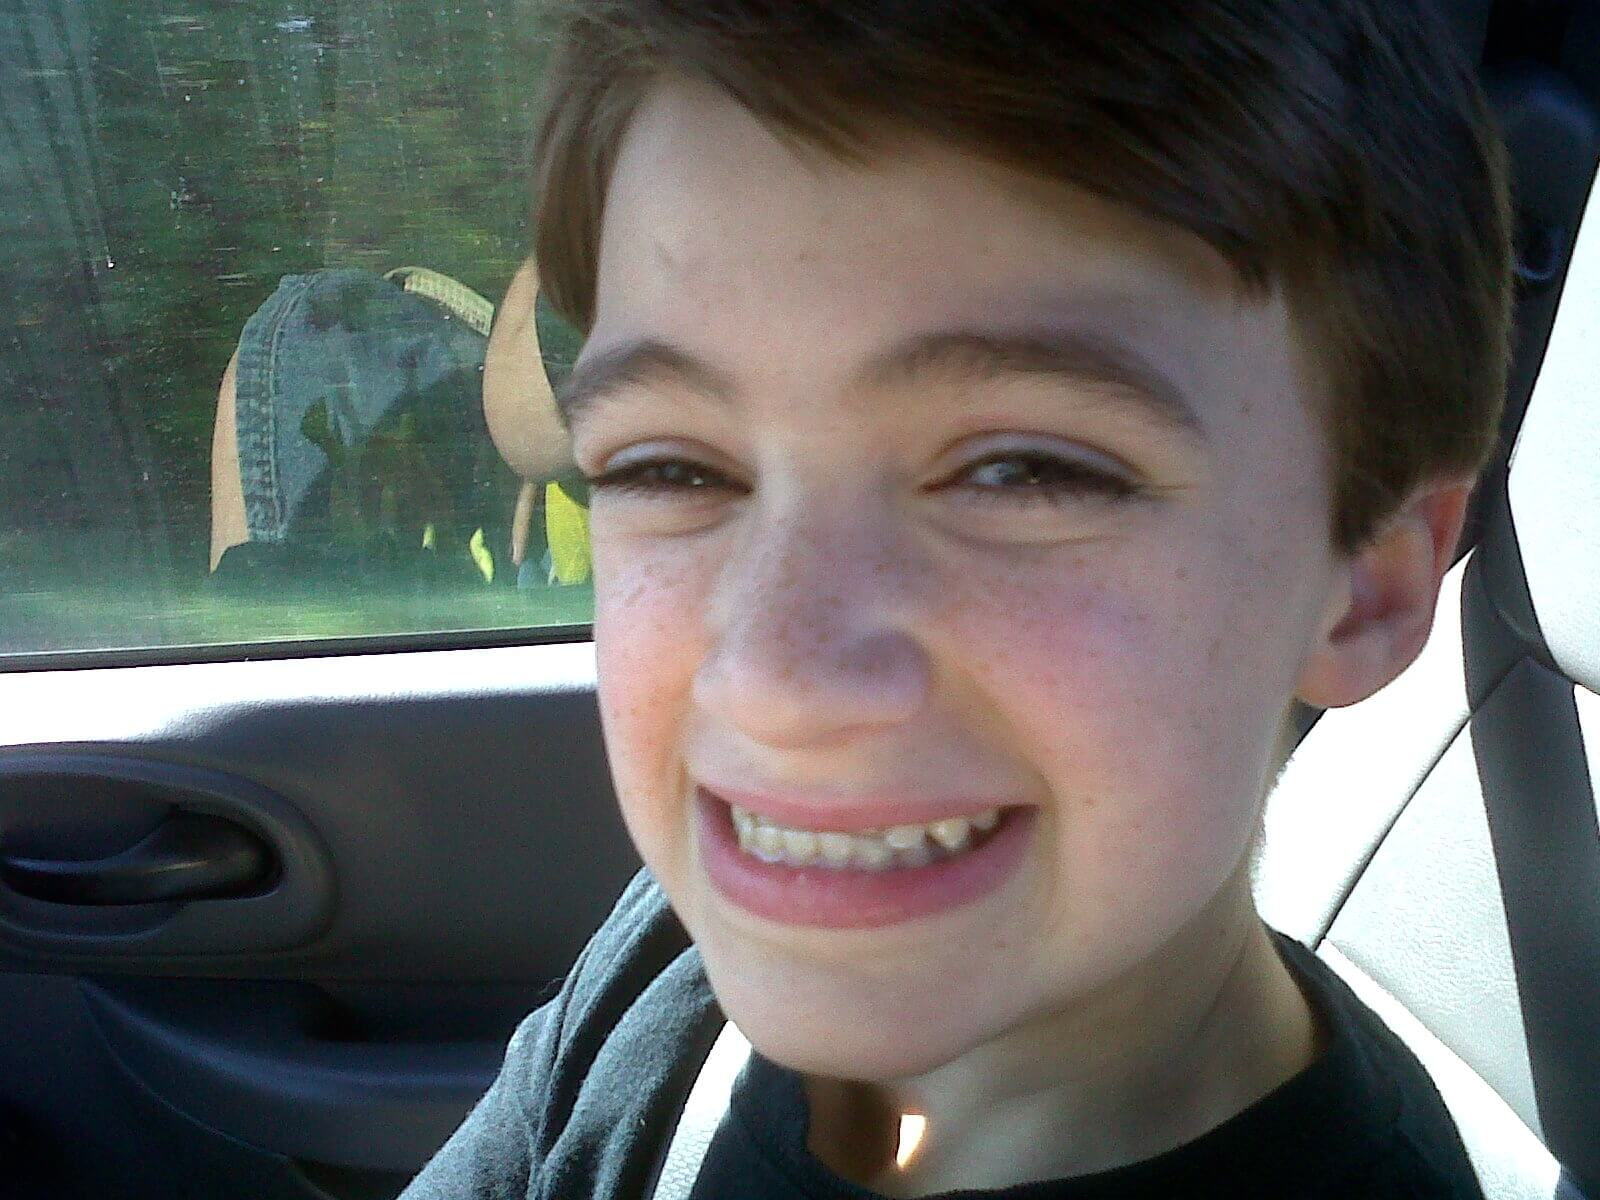 Mitchell smiling